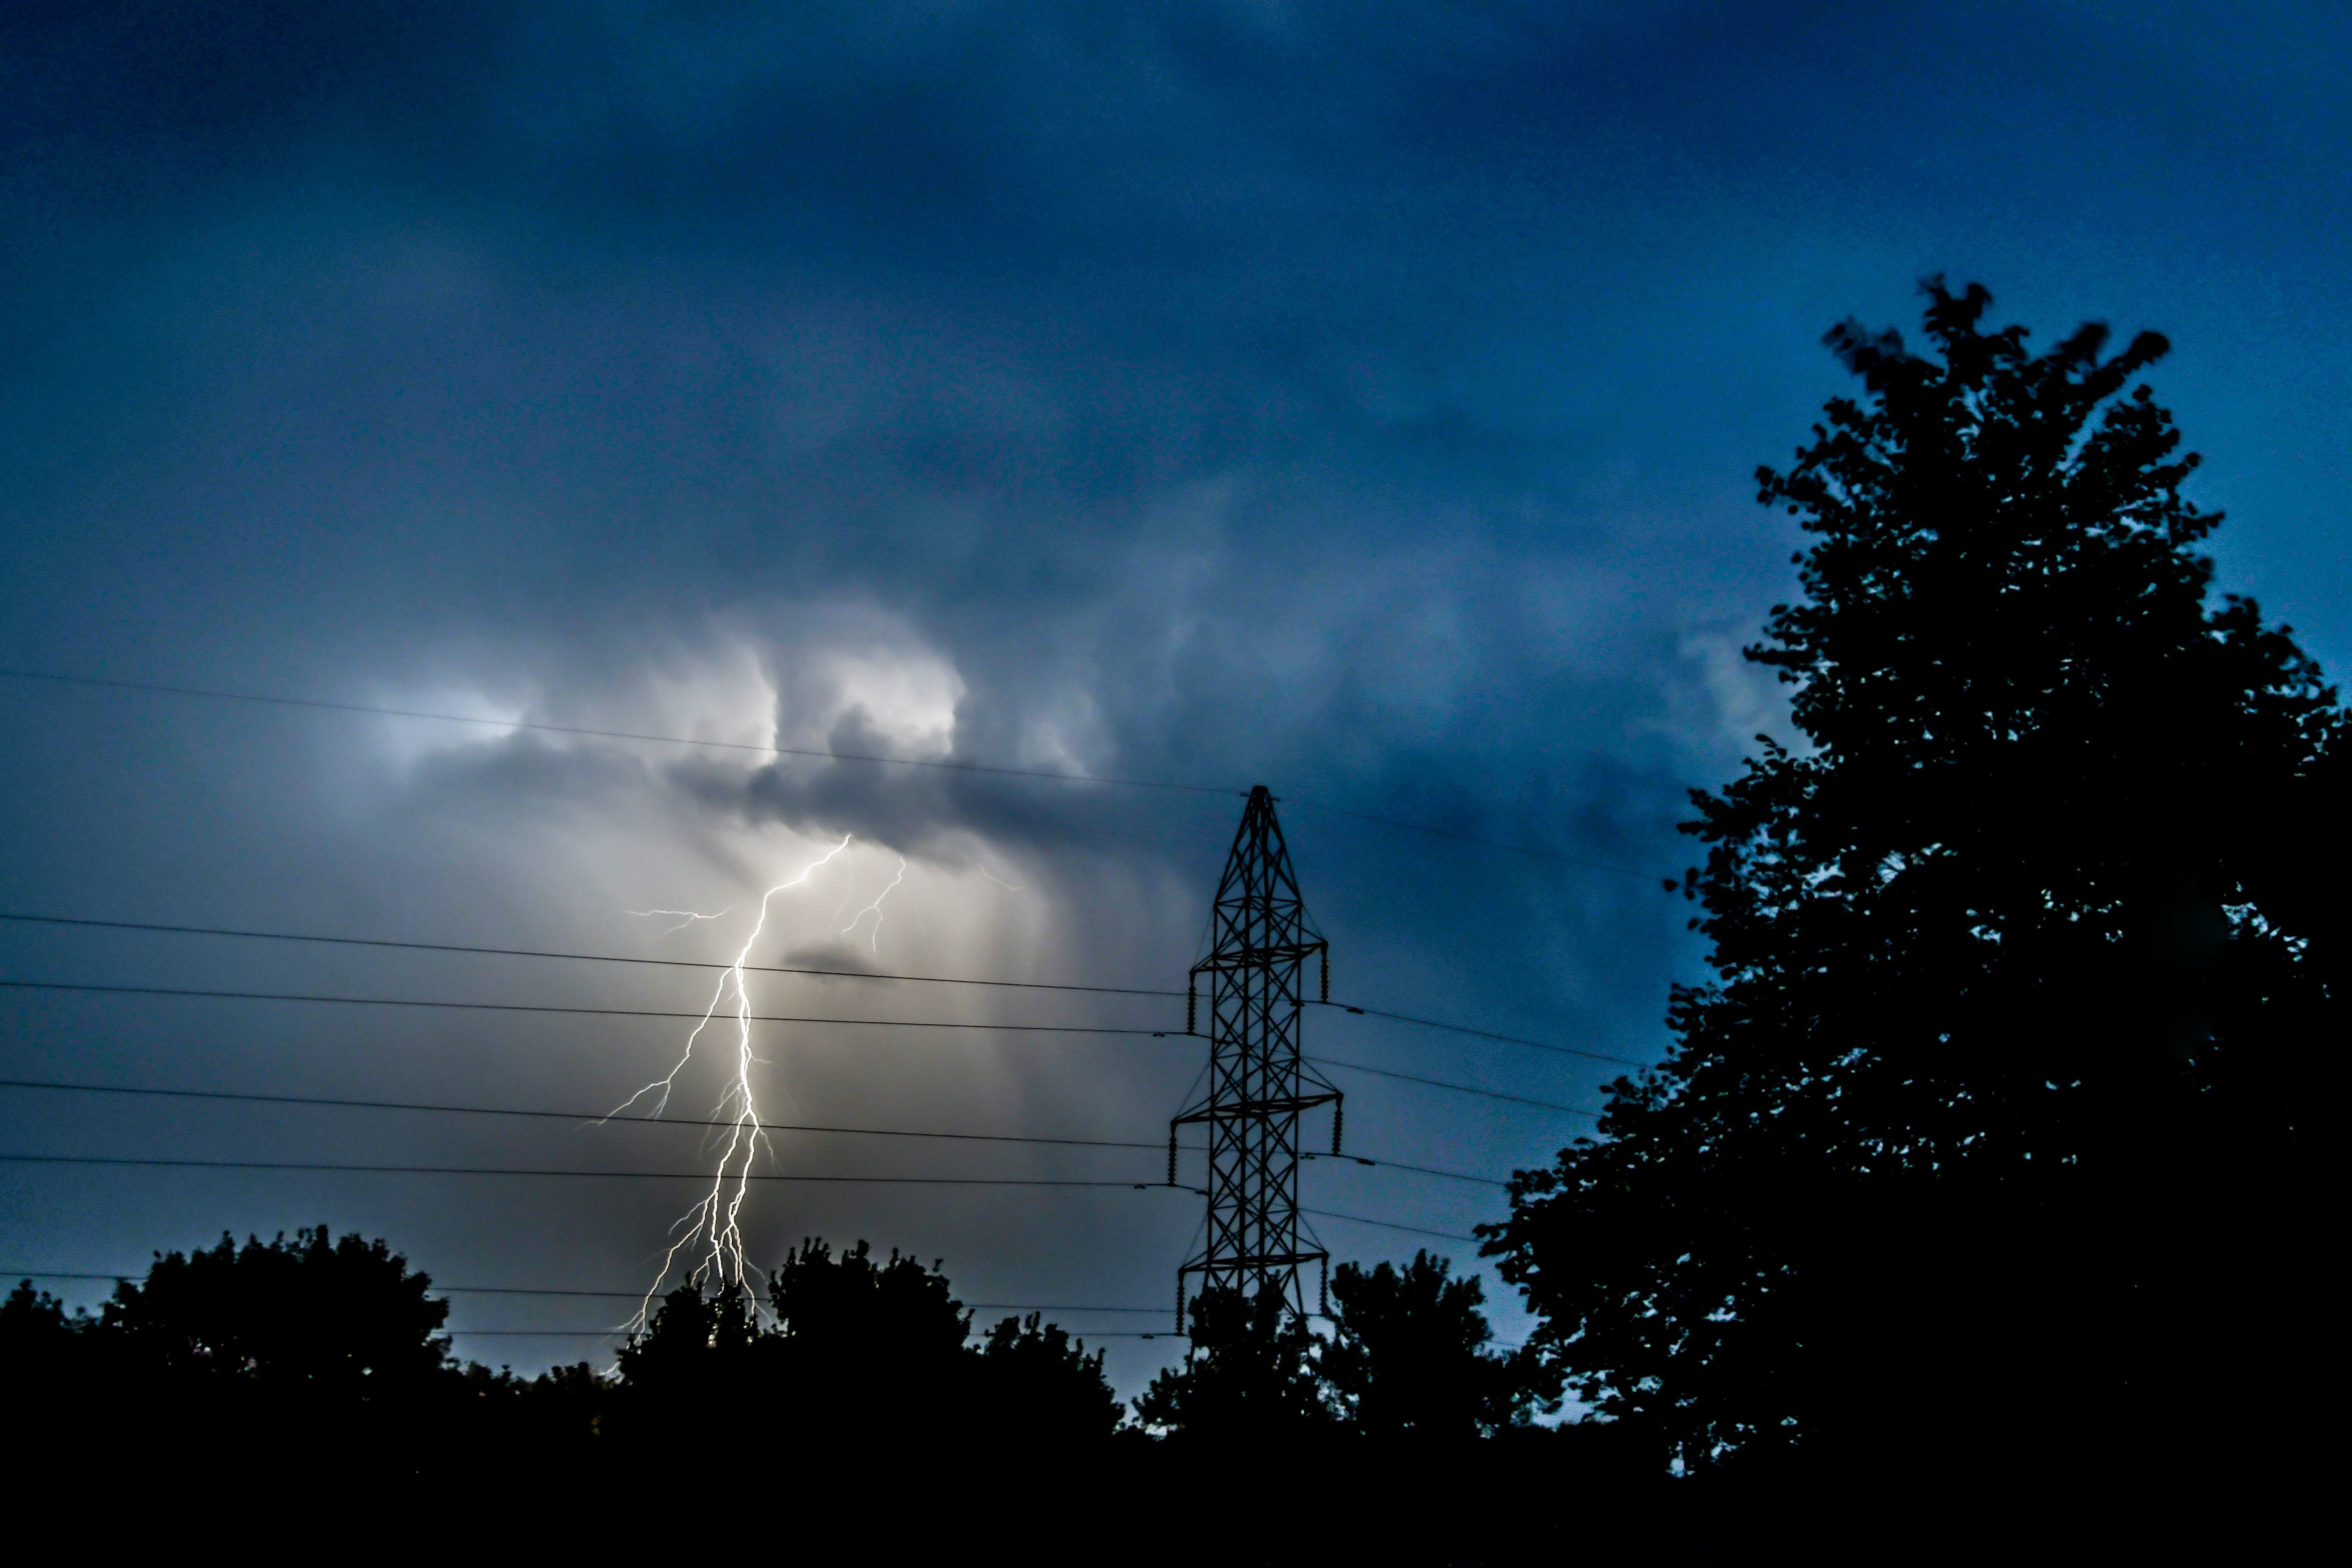 silhouette photo of trees near electric tower under lightning